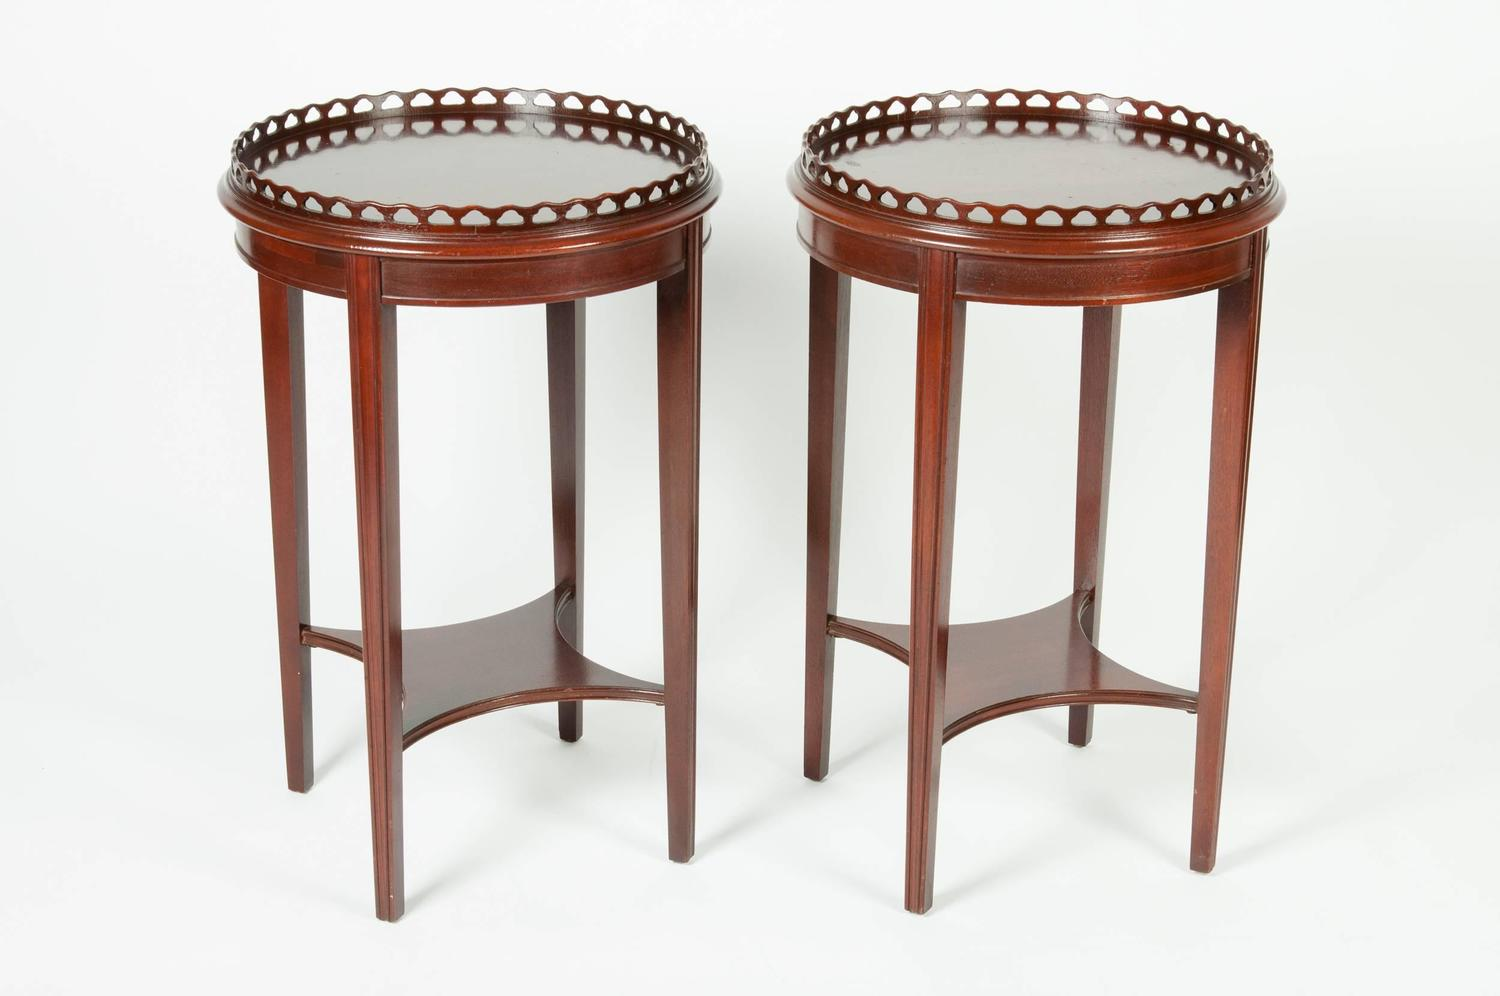 Antique Pair Of Round Mahogany End Tables For Sale At 1stdibs